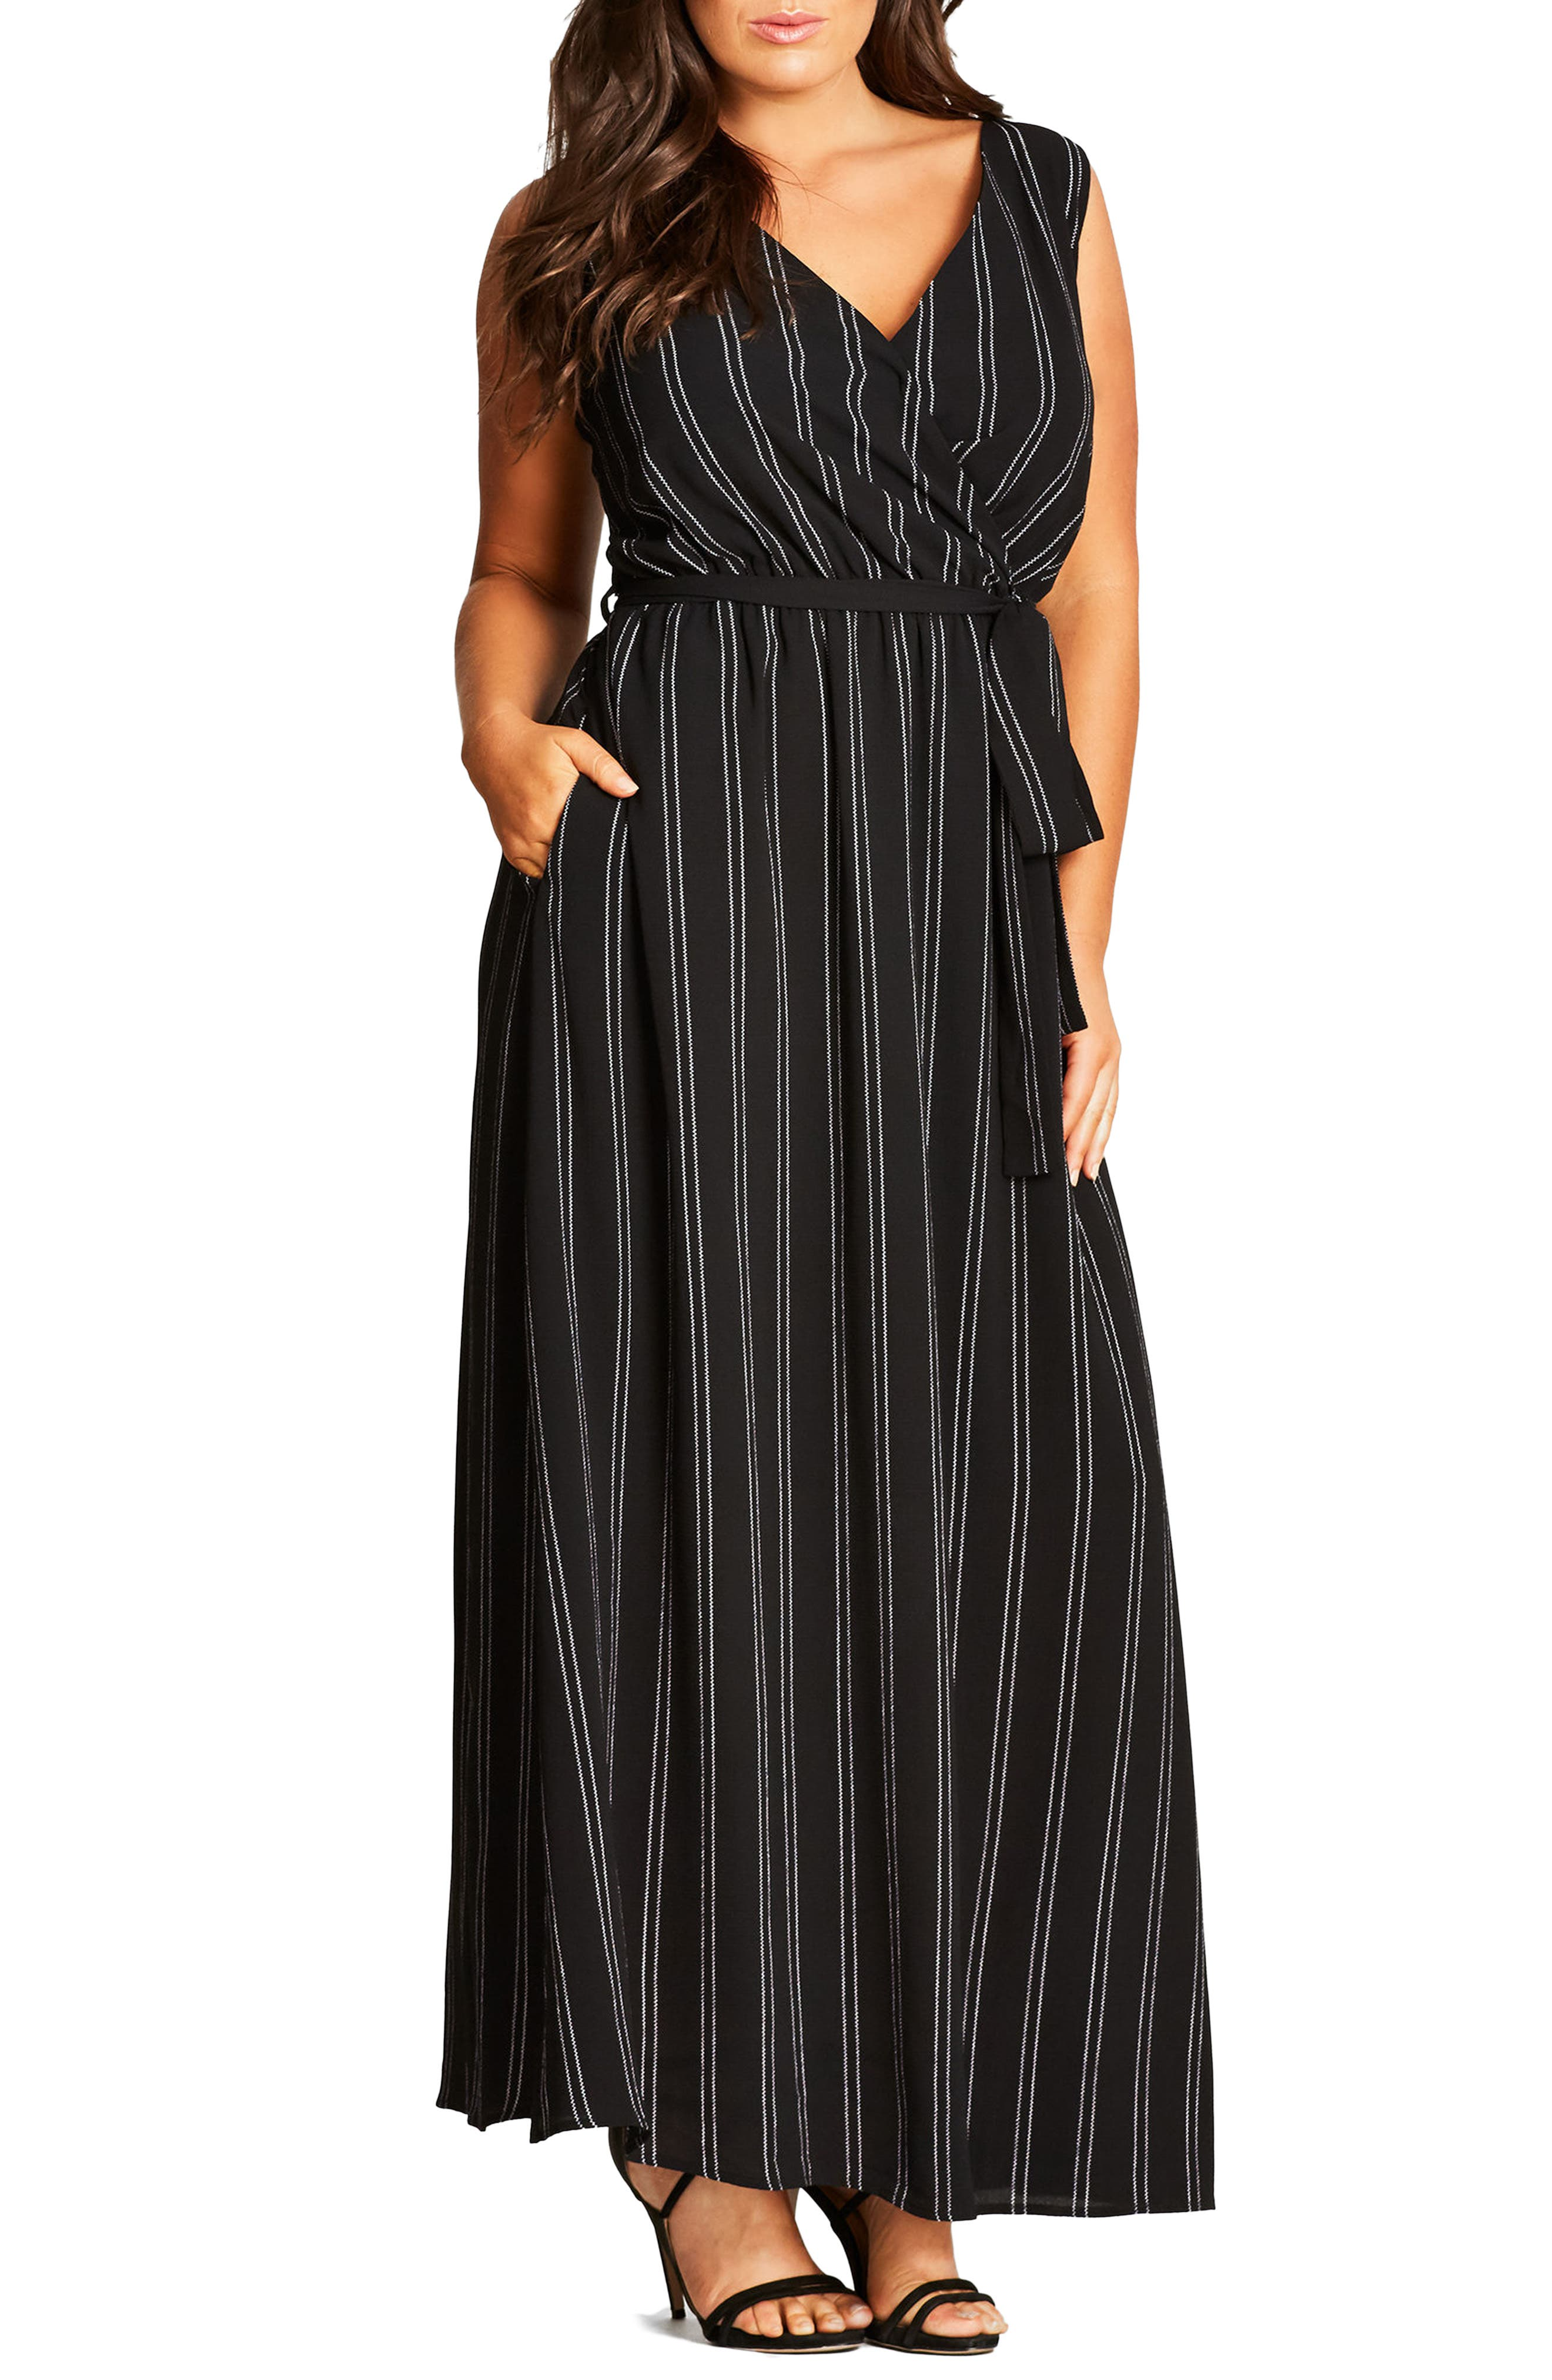 Alternate Image 1 Selected - City Chic Pin Stripe Maxi Dress (Plus Size)